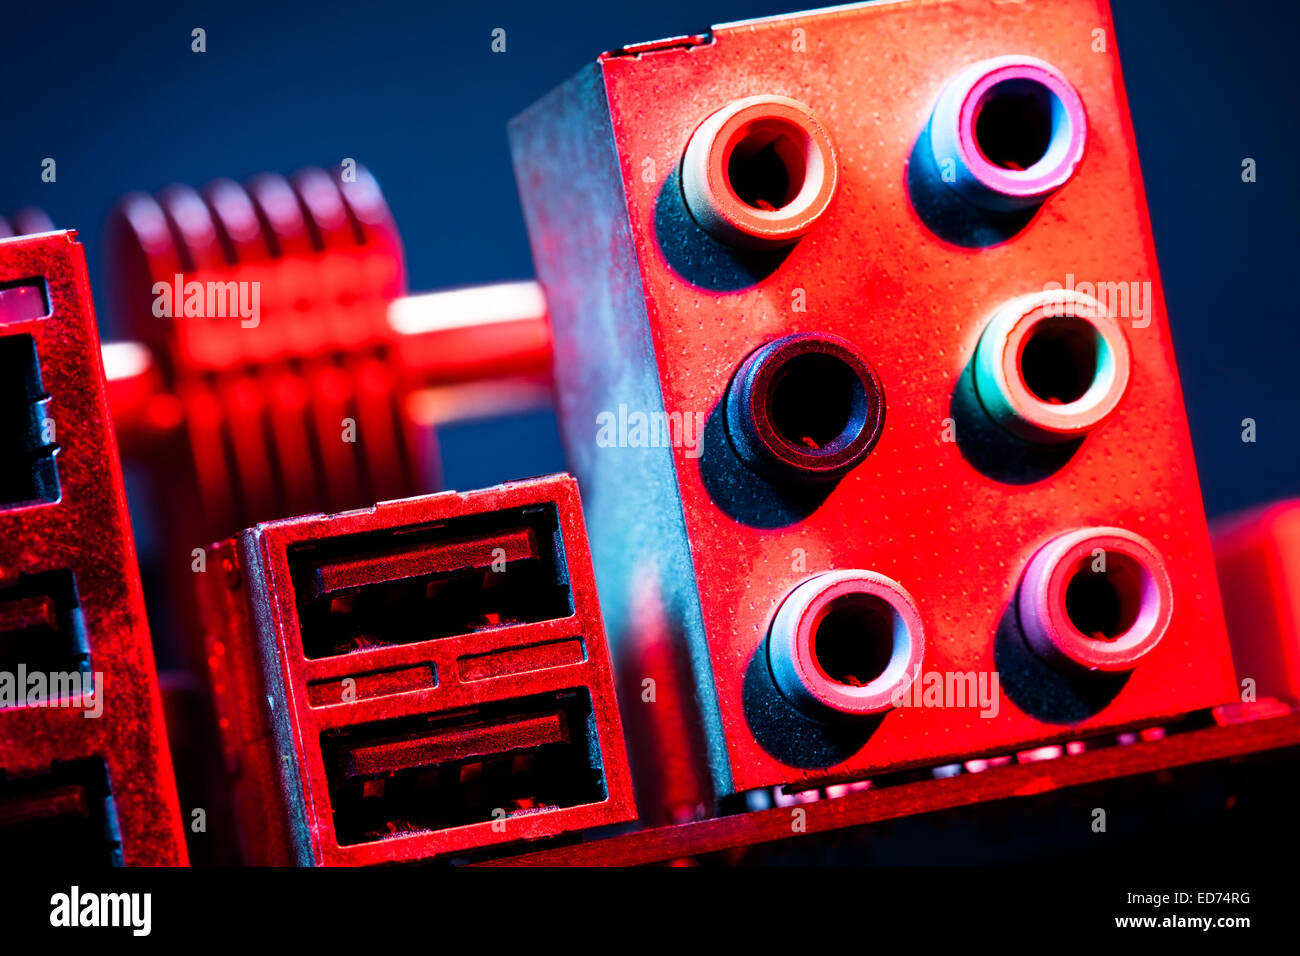 motherboard audio input output - Stock Image